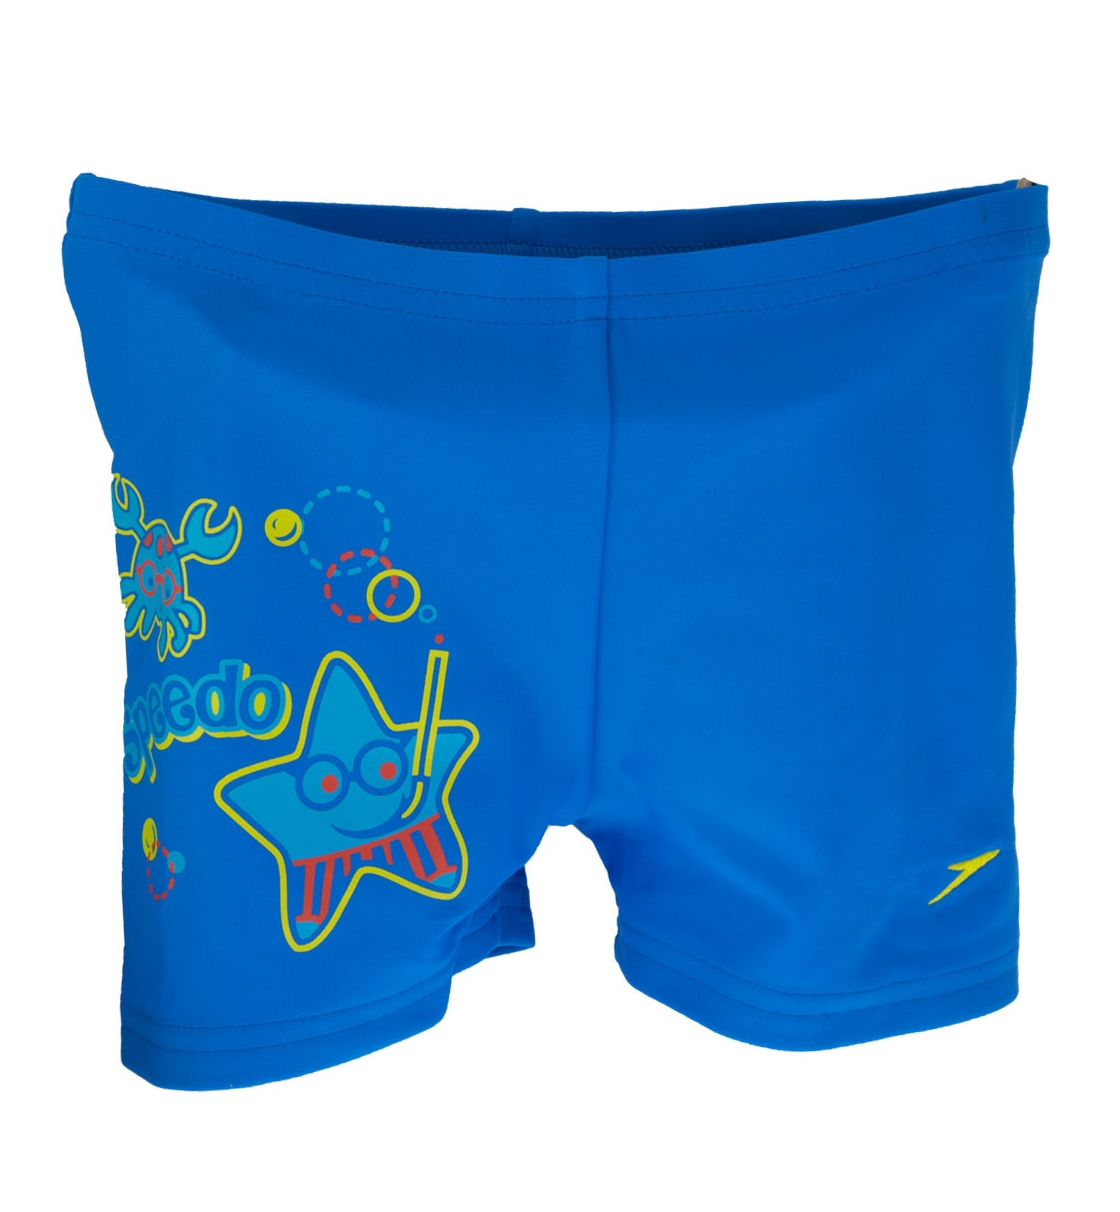 Speedo Παιδικό Μαγιό Boxer Seasquad Placement Aquashort 809219B419